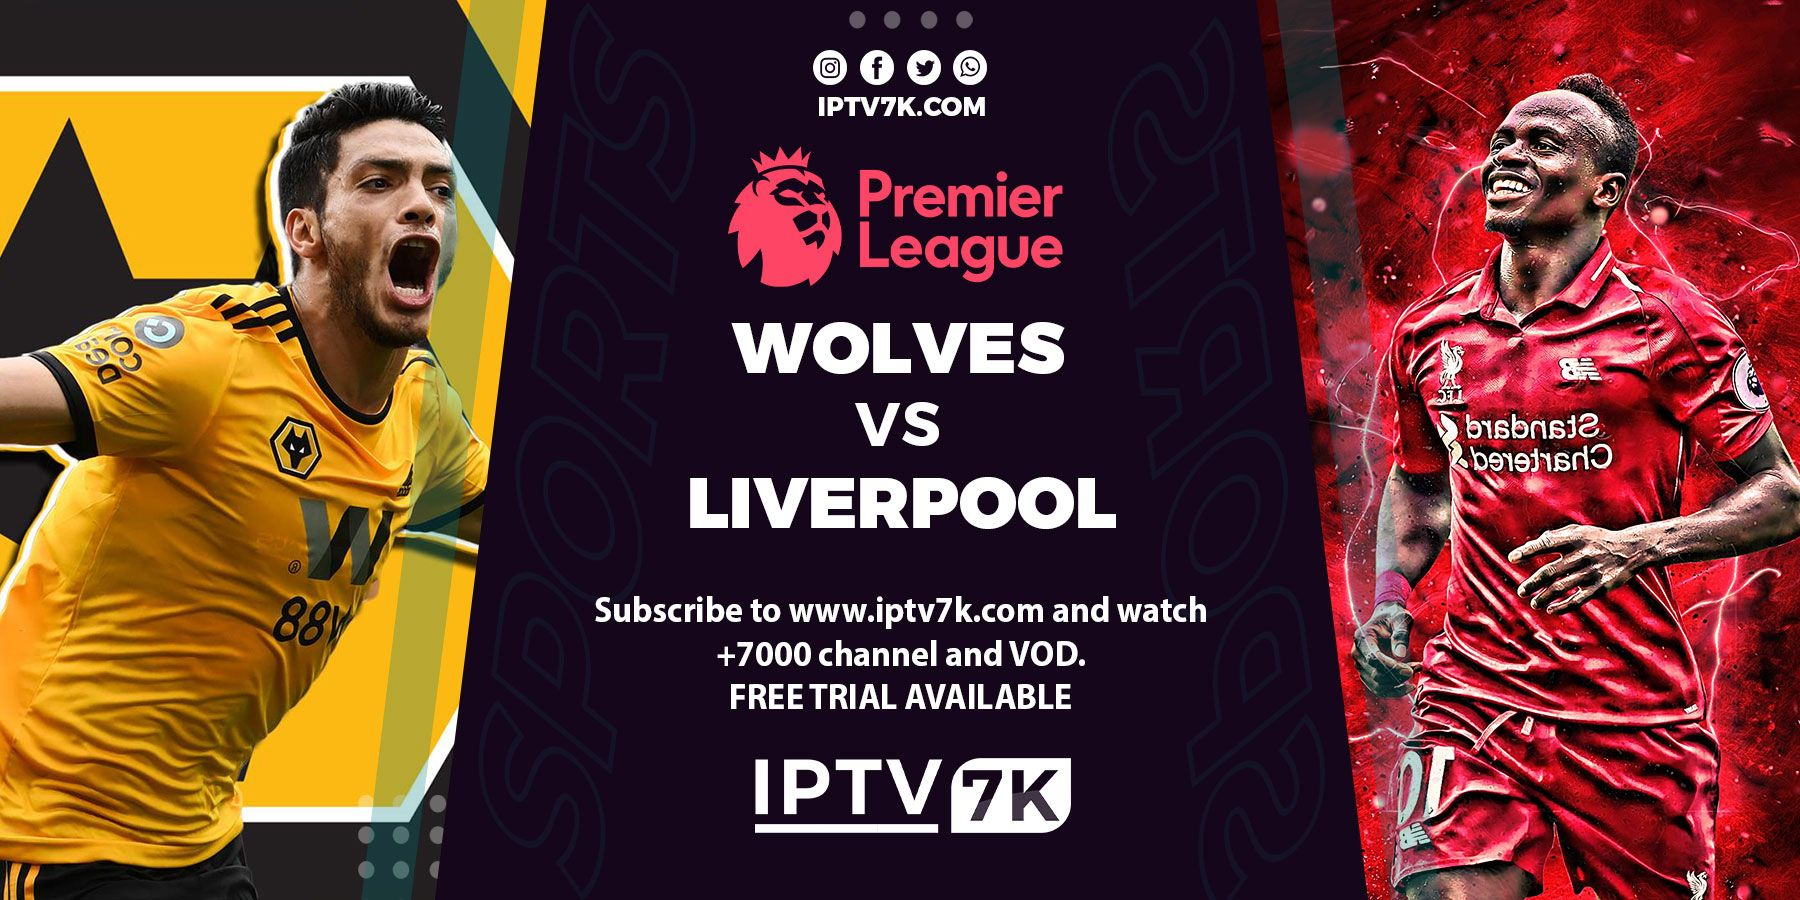 Wolves vs Liverpool Live stream, TV channel, news for